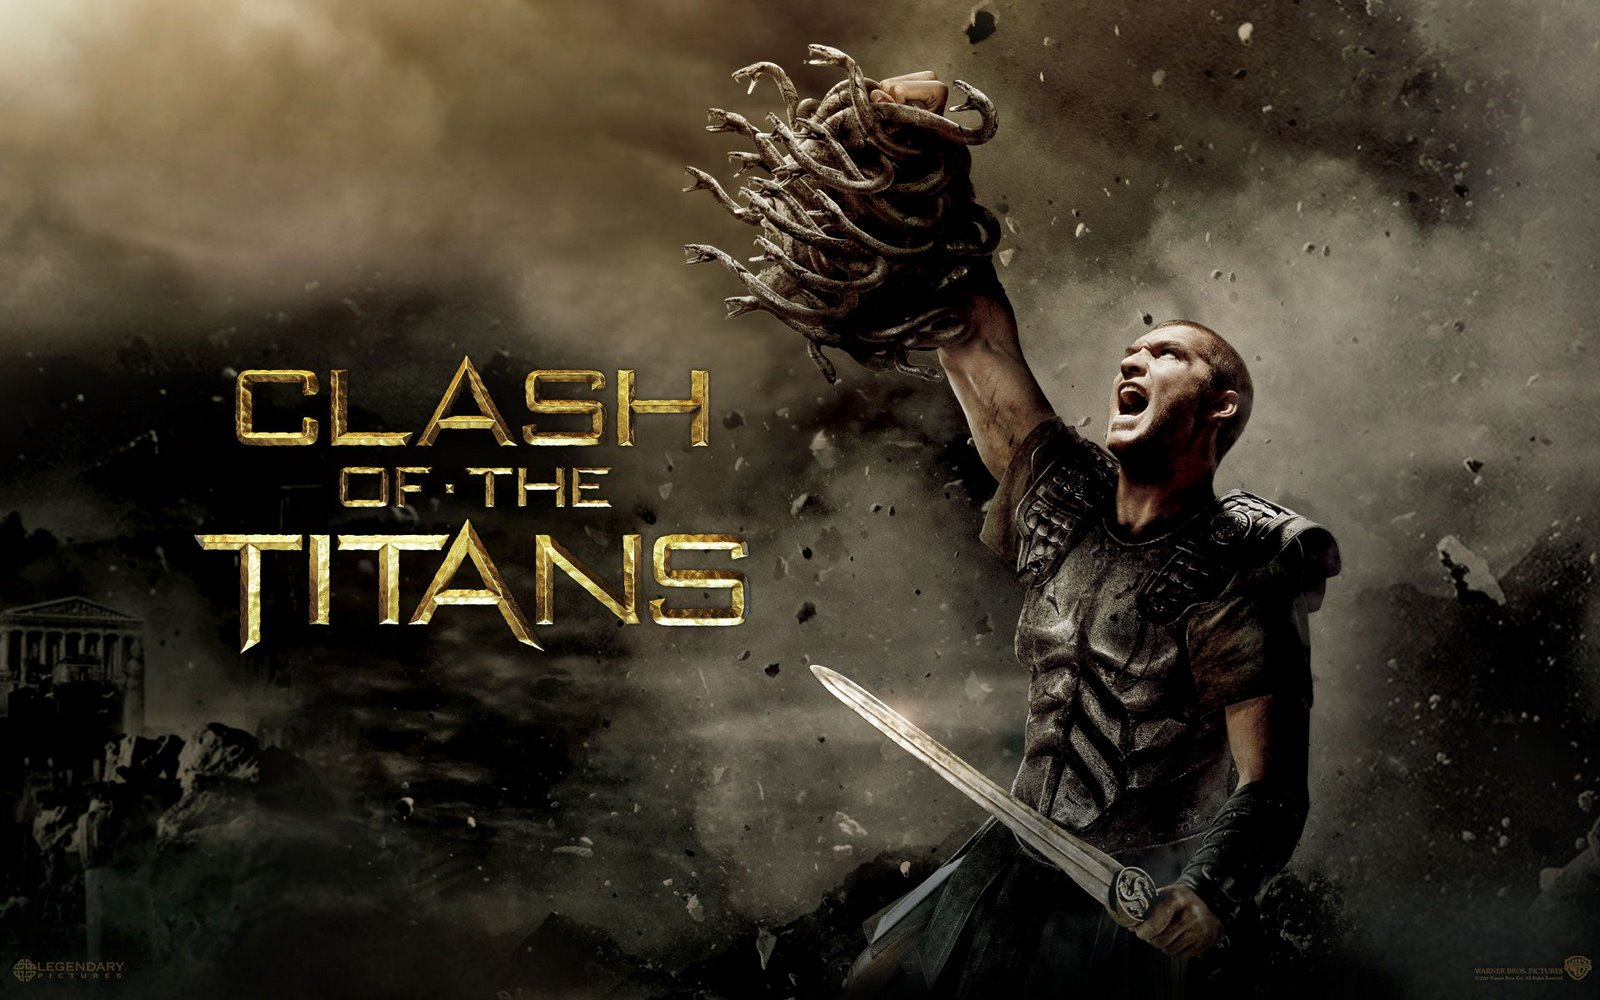 http://4.bp.blogspot.com/_rhrvnb_-SMk/S8YllfIO_eI/AAAAAAAADaU/fACrAyFWr7Q/s1600/2010_clash_of_the_titans_wallpaper_001.jpg